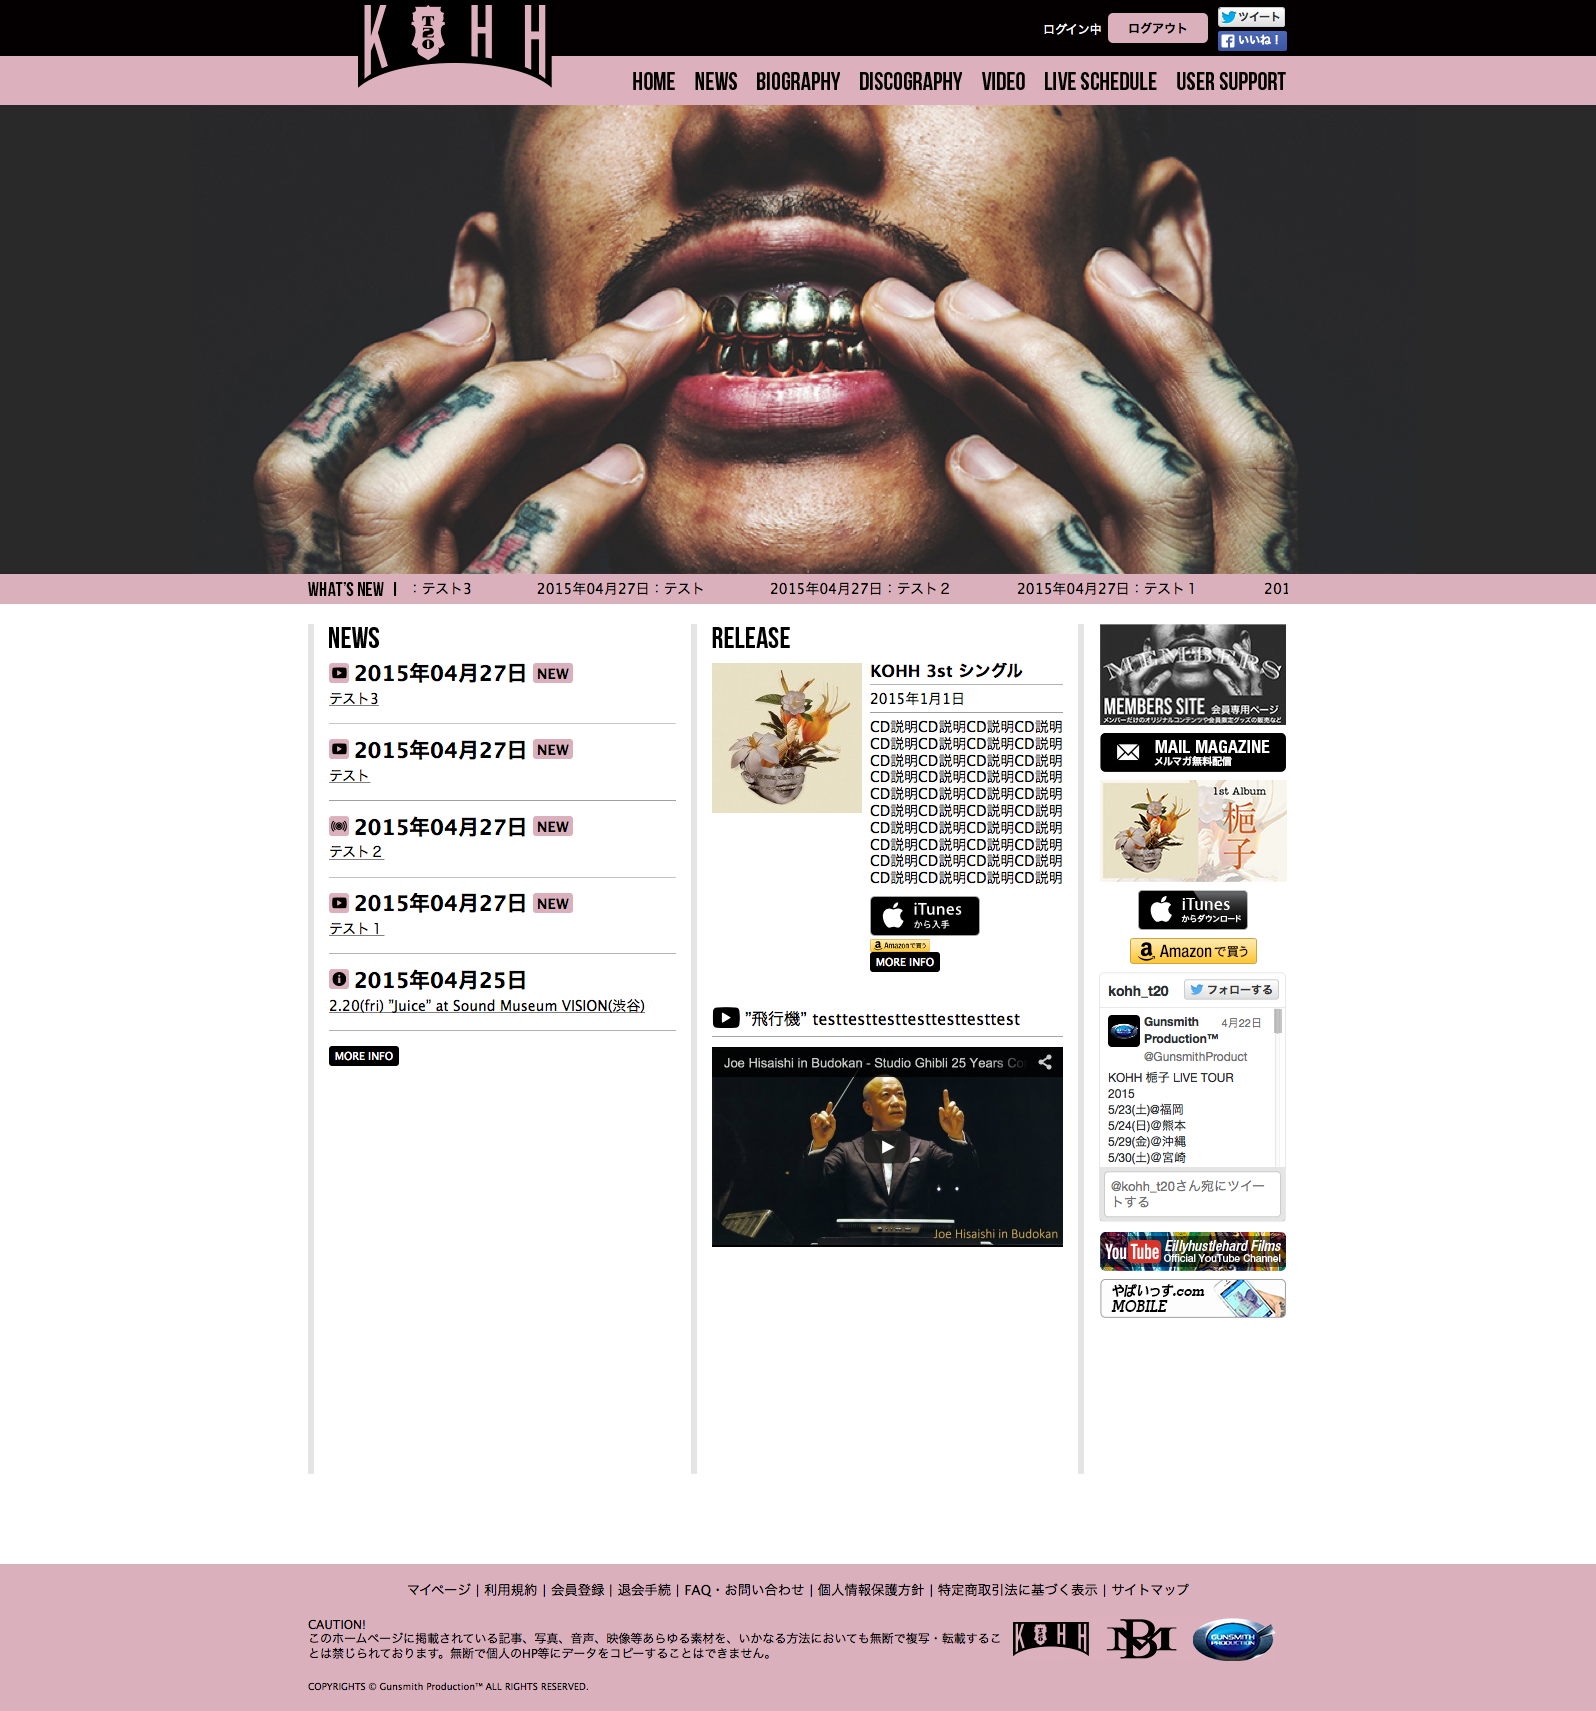 KOHH_Official_Site